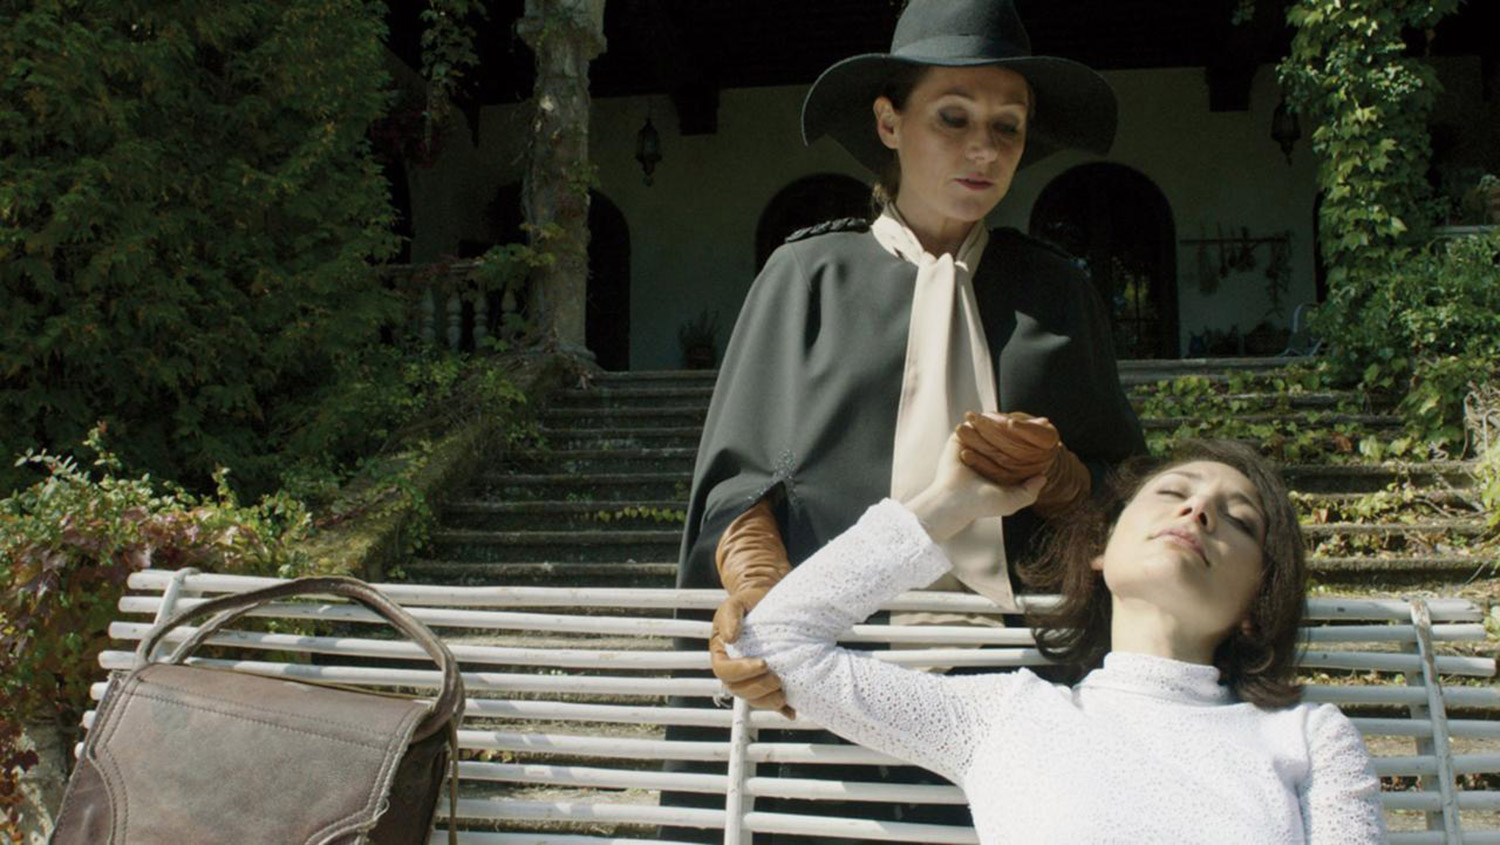 Erotic Art House Films, The Duke of Burgundy - outdoors